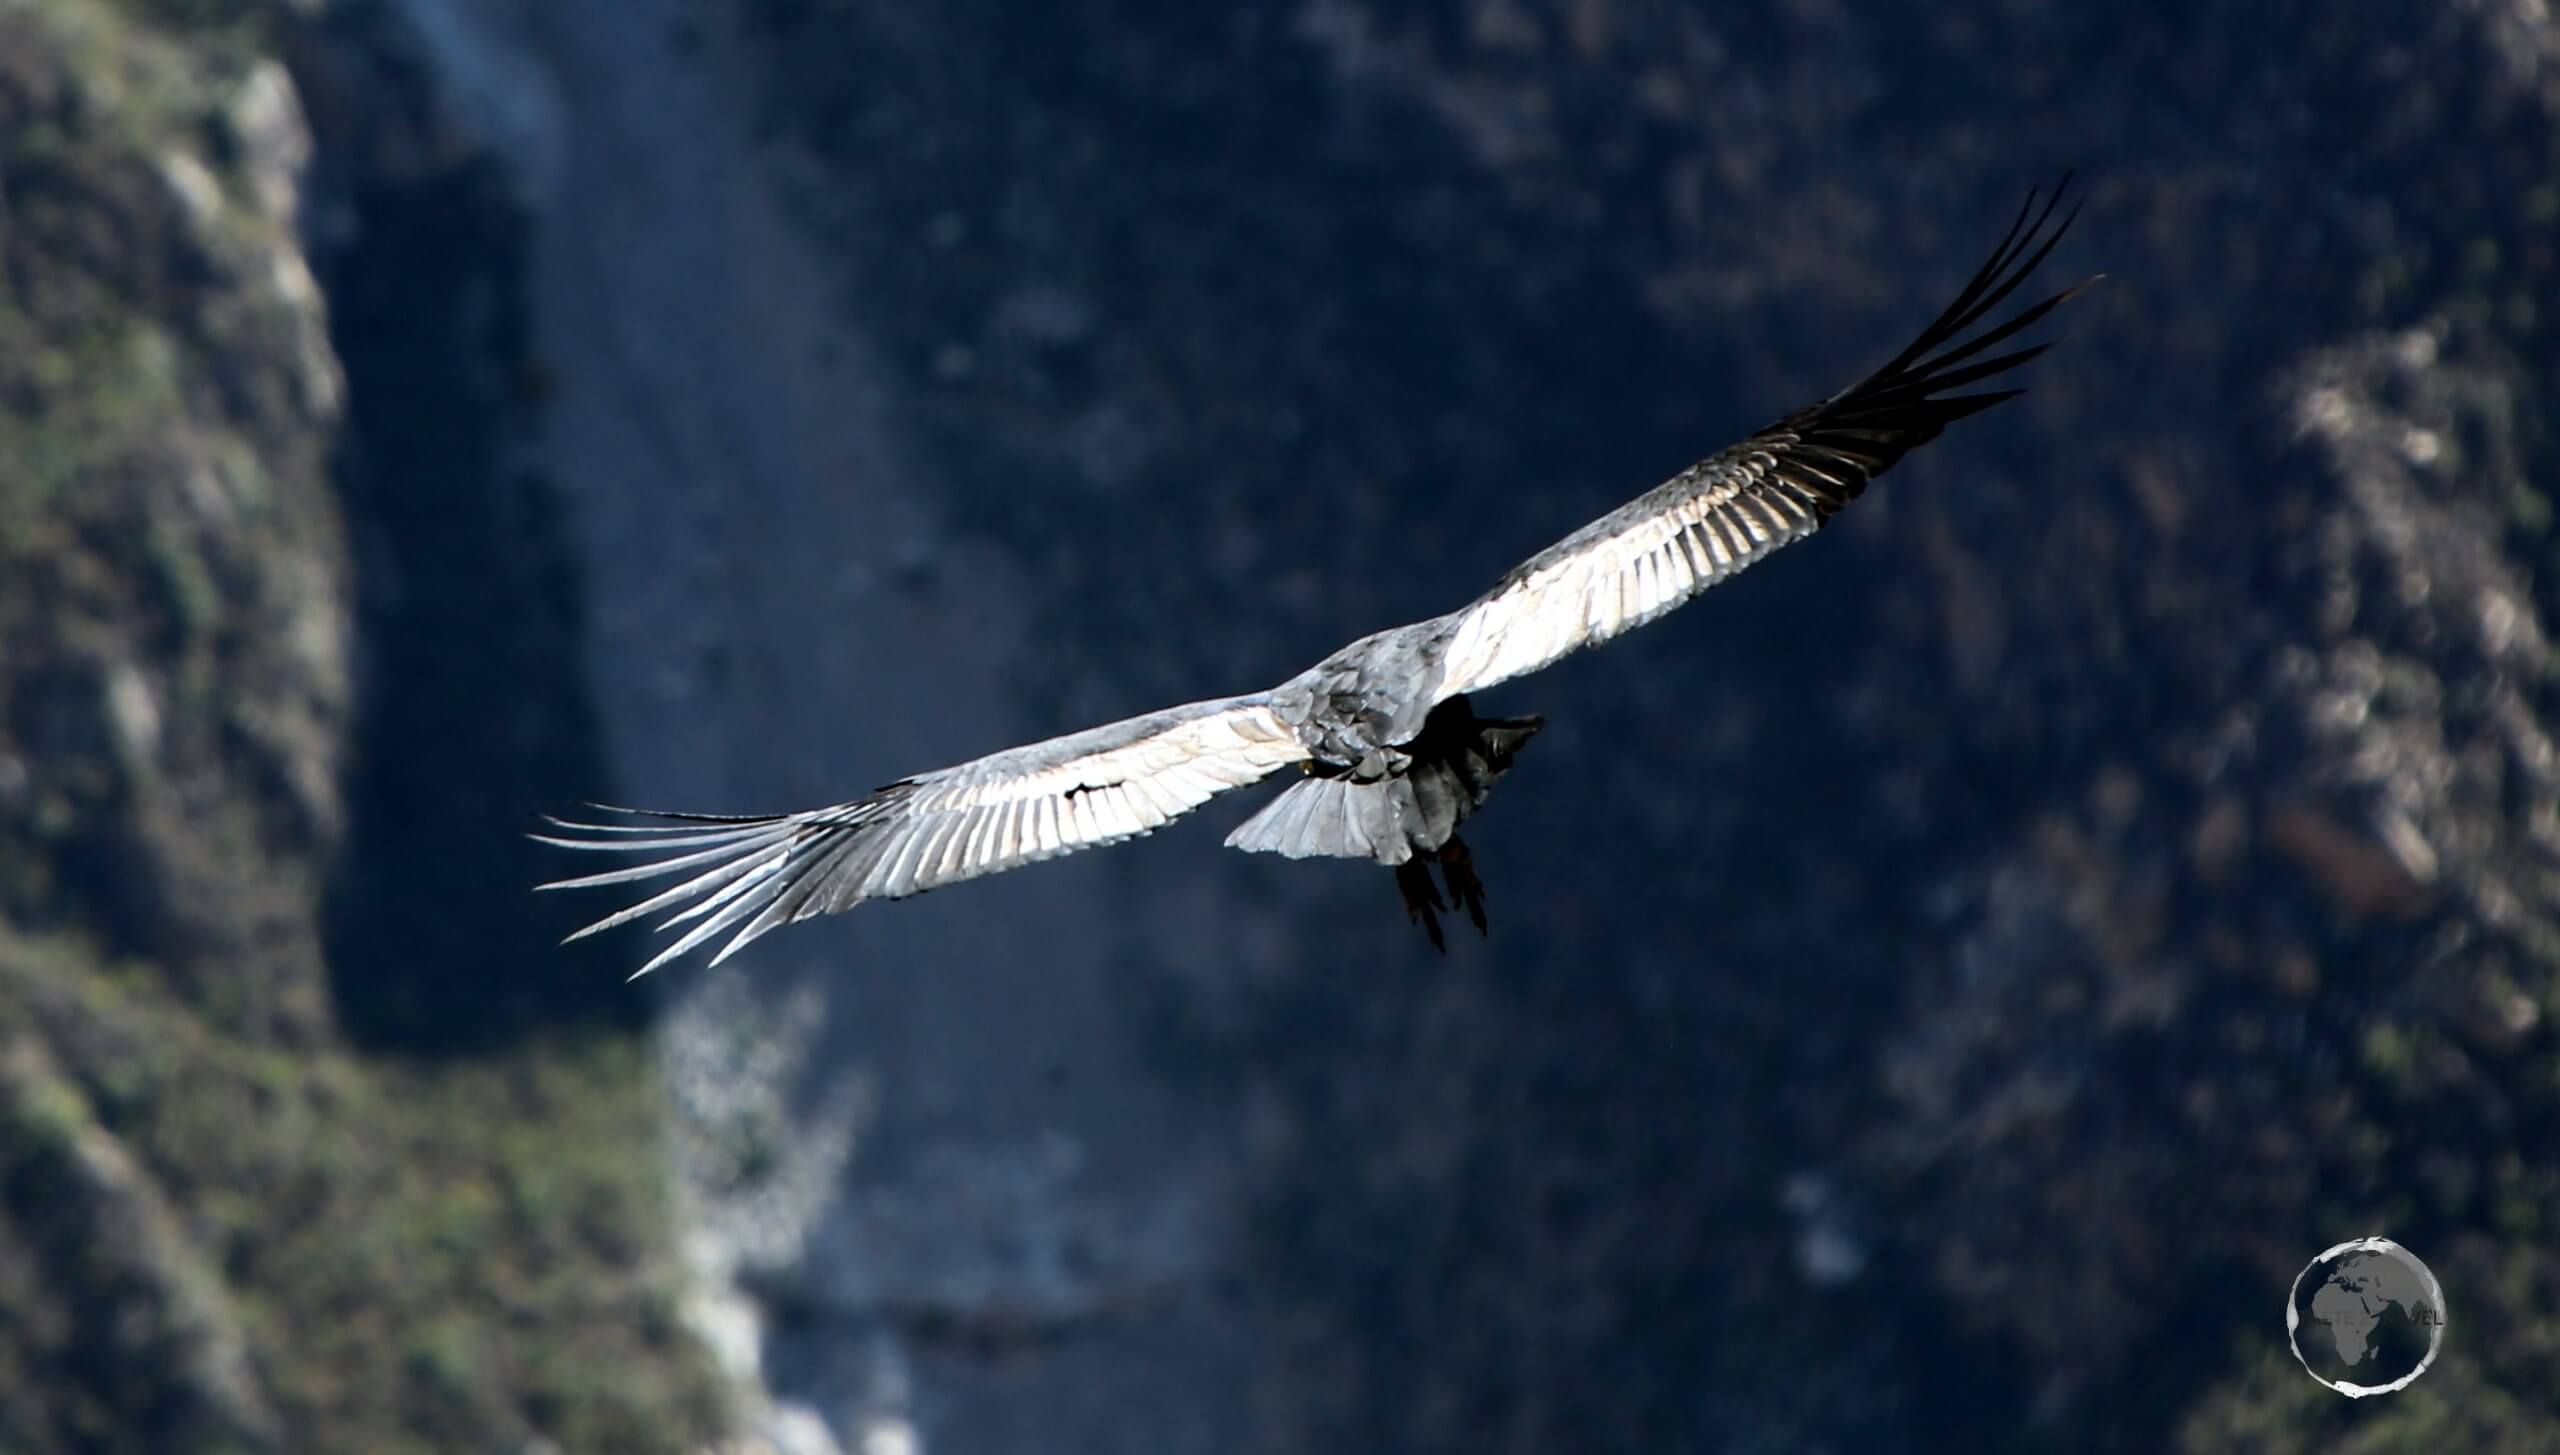 Andean Condors roost inside Colca canyon, in areas where they can make use of favourable thermals to get themselves airborne in the morning.